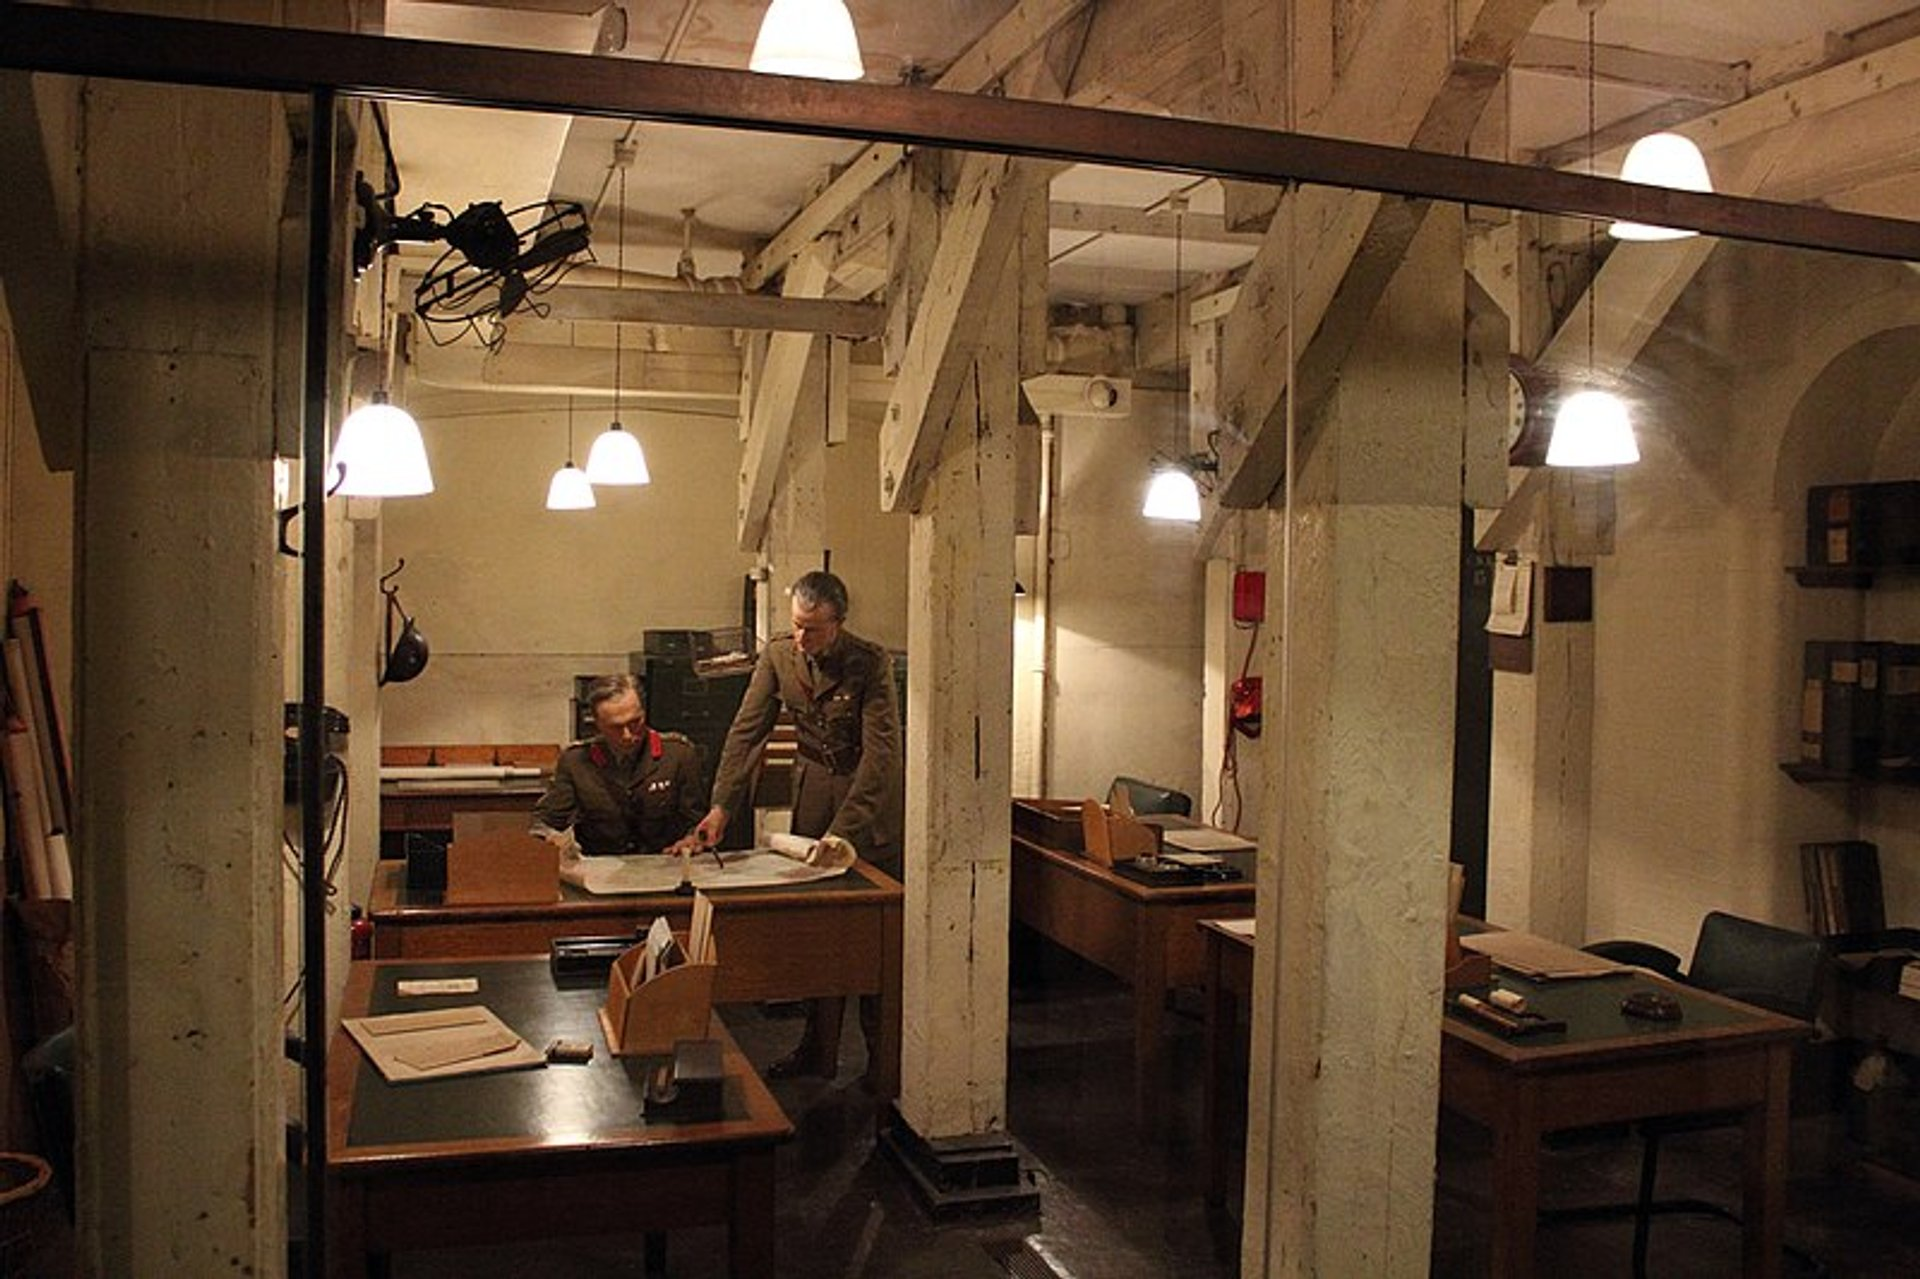 Best time for Churchill War Rooms in London 2019